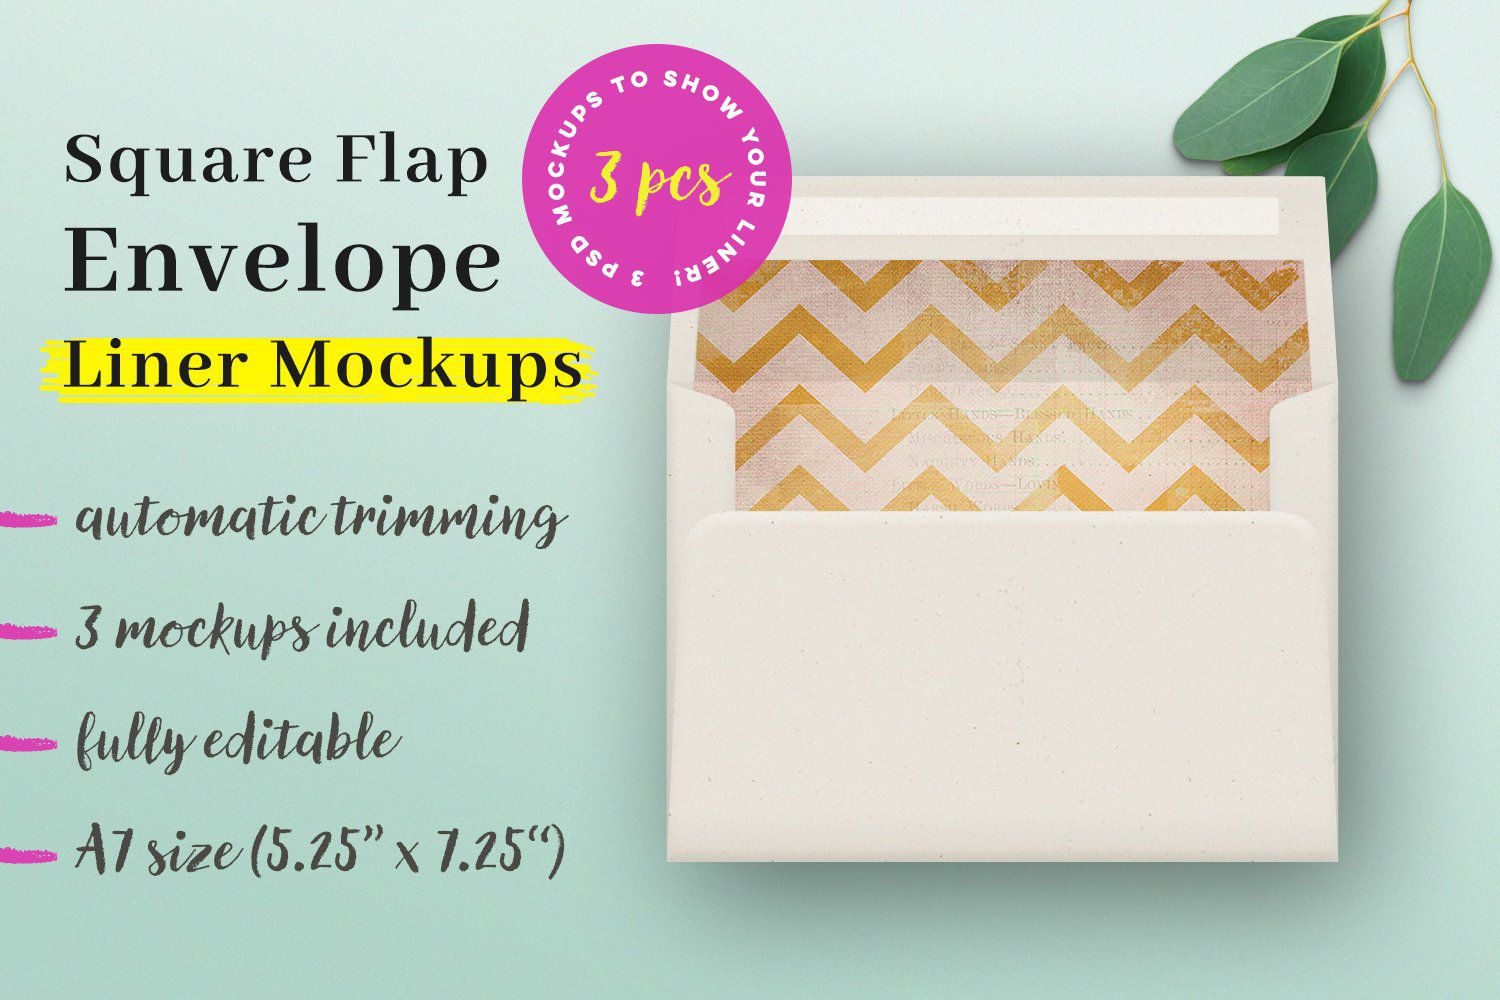 008 Excellent A7 Square Flap Envelope Liner Template High Definition Full